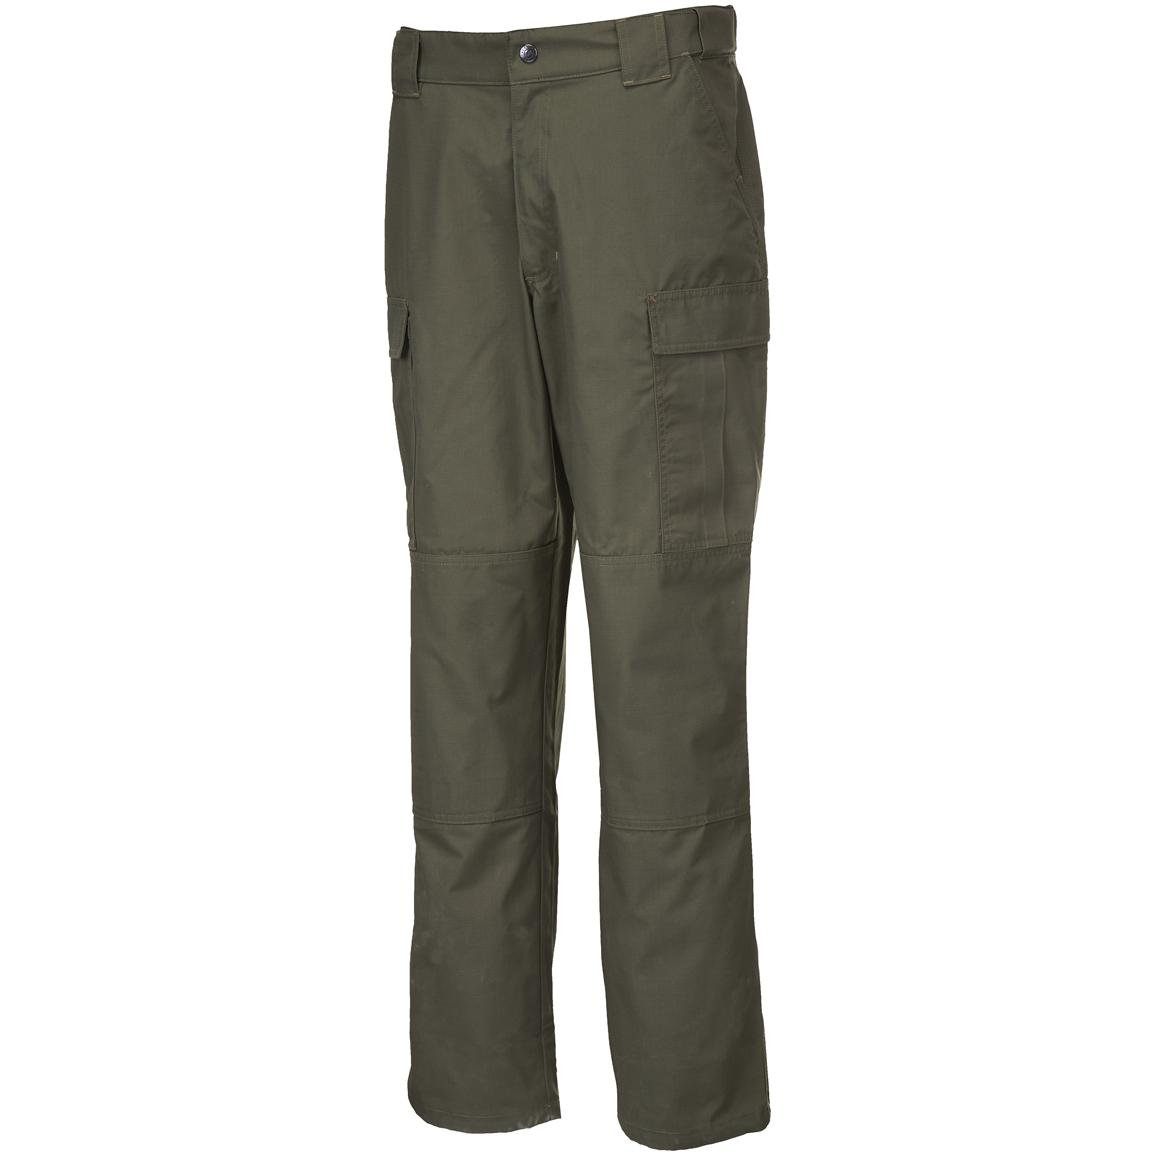 Men's 5.11 Tactical® Taclite™ TDU® Pants, TDU Green